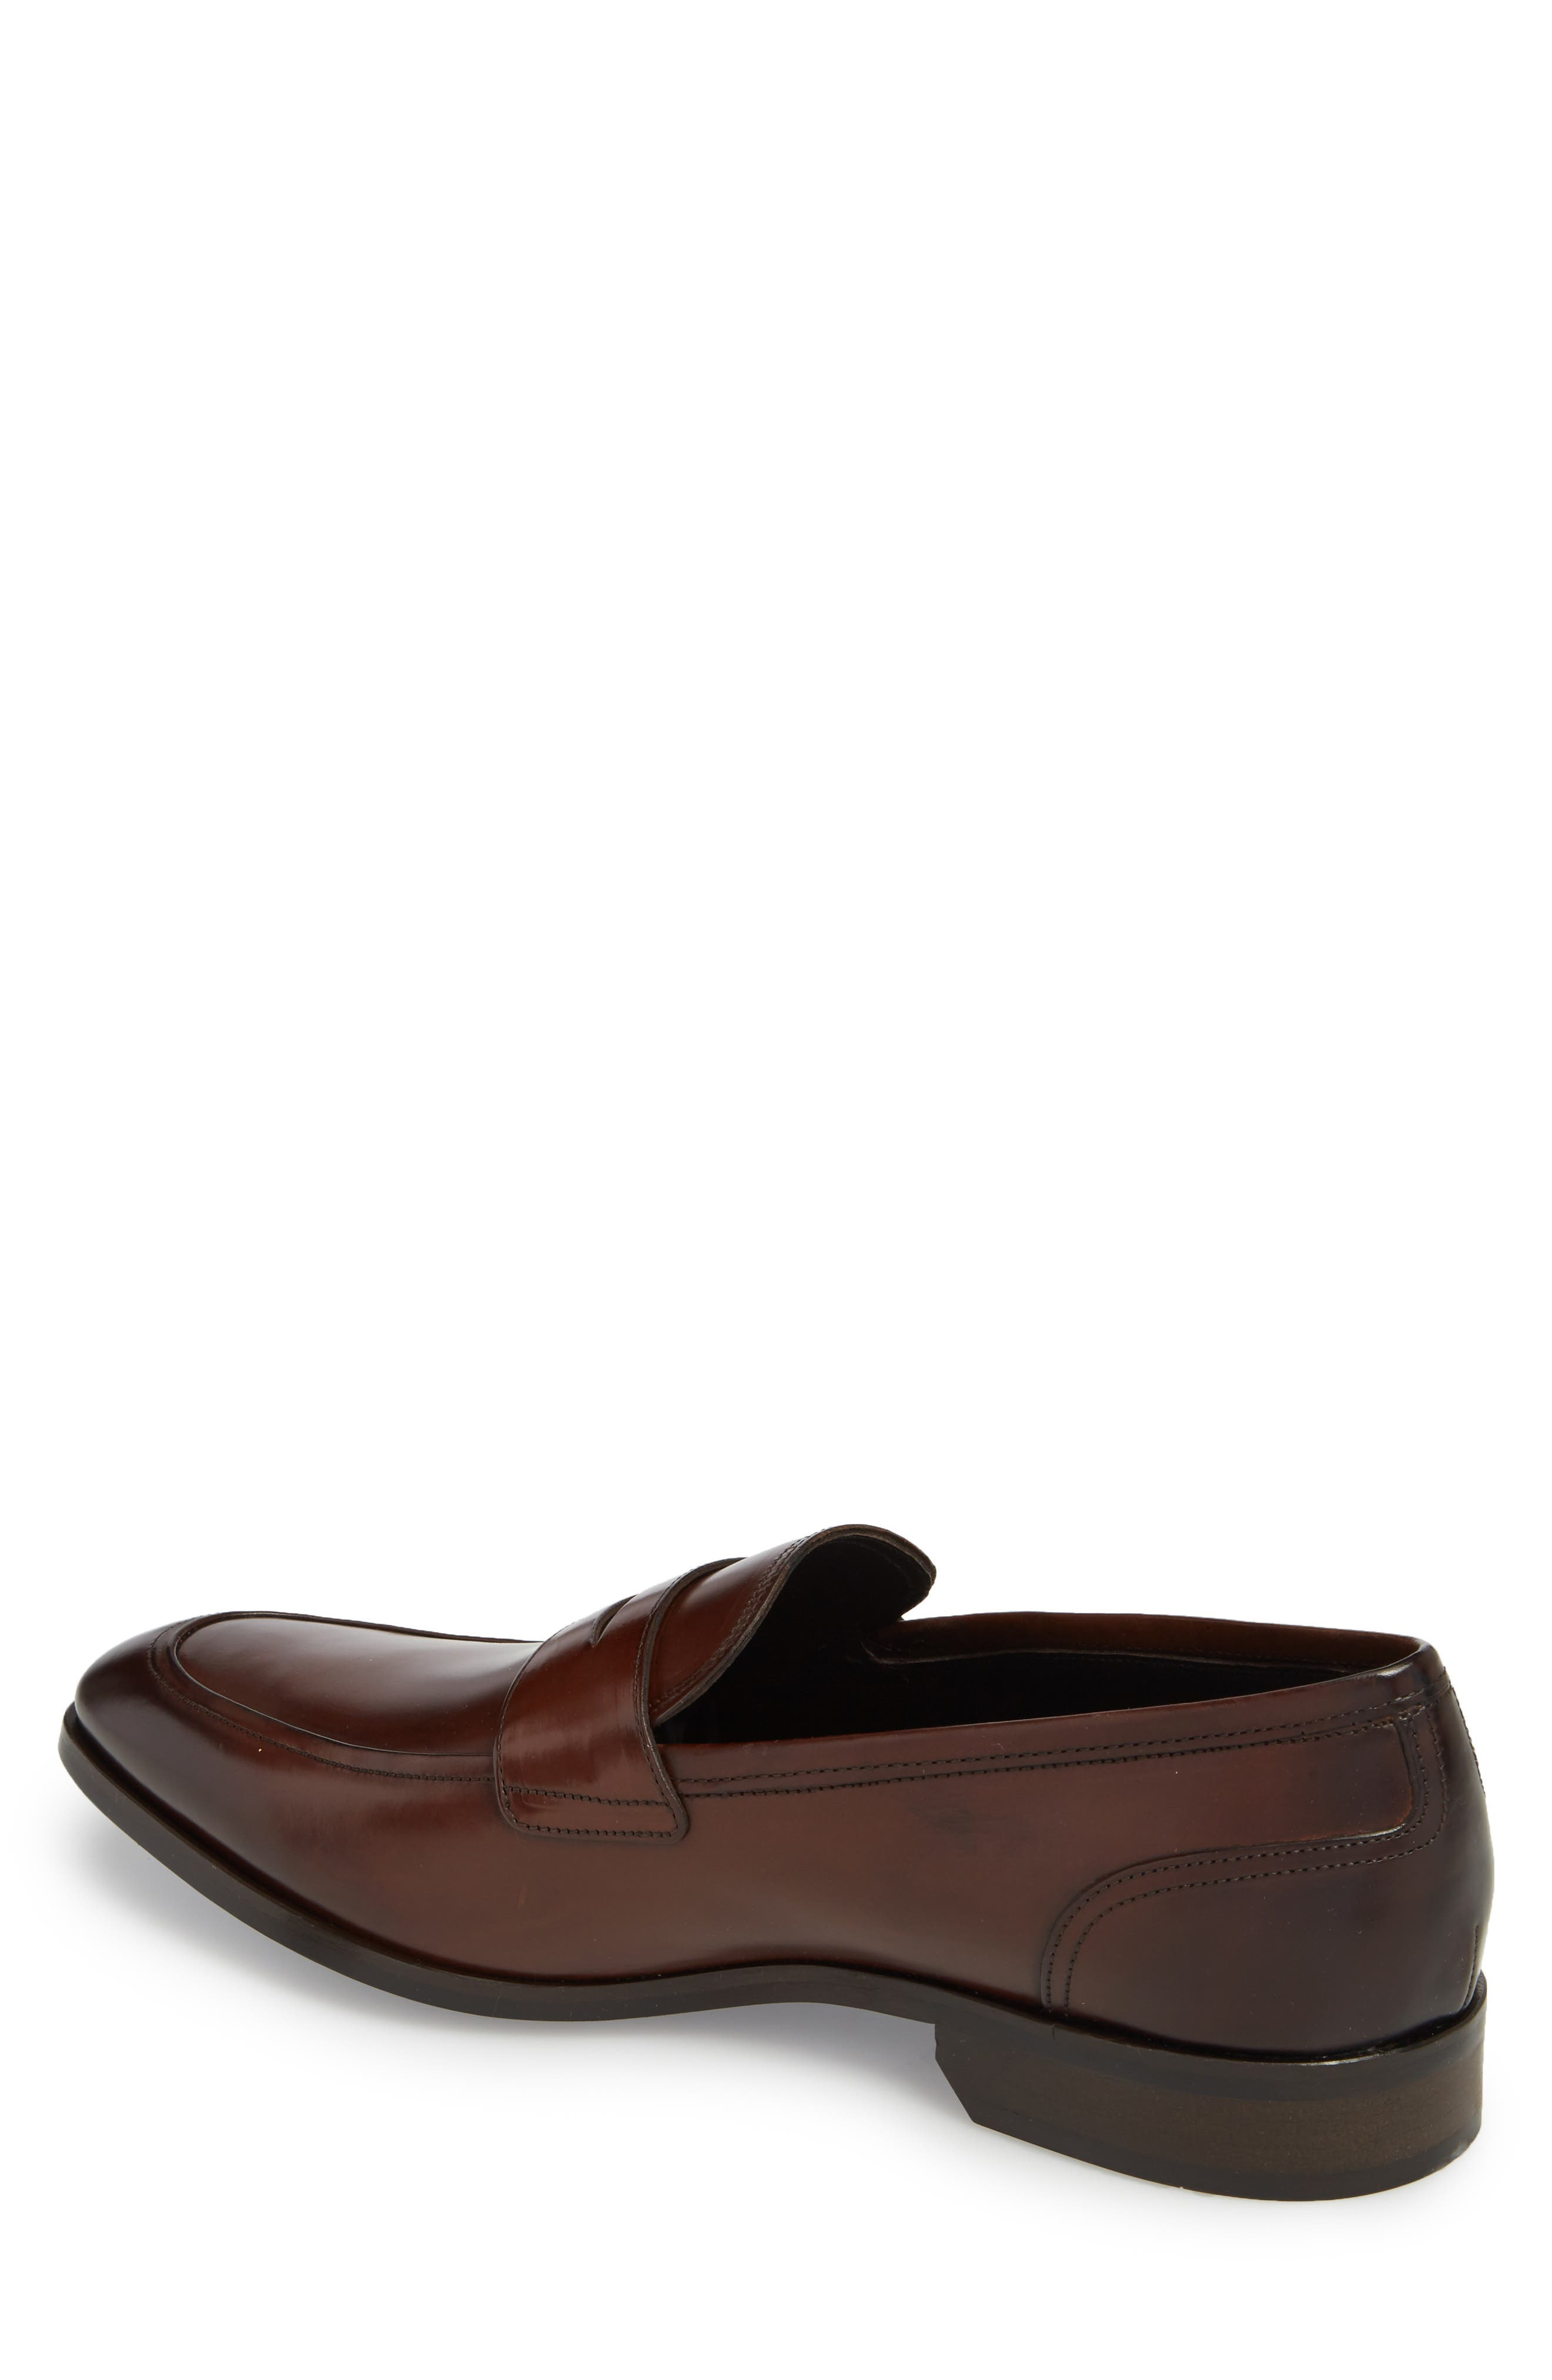 Deane Penny Loafer,                             Alternate thumbnail 2, color,                             Marrone Leather